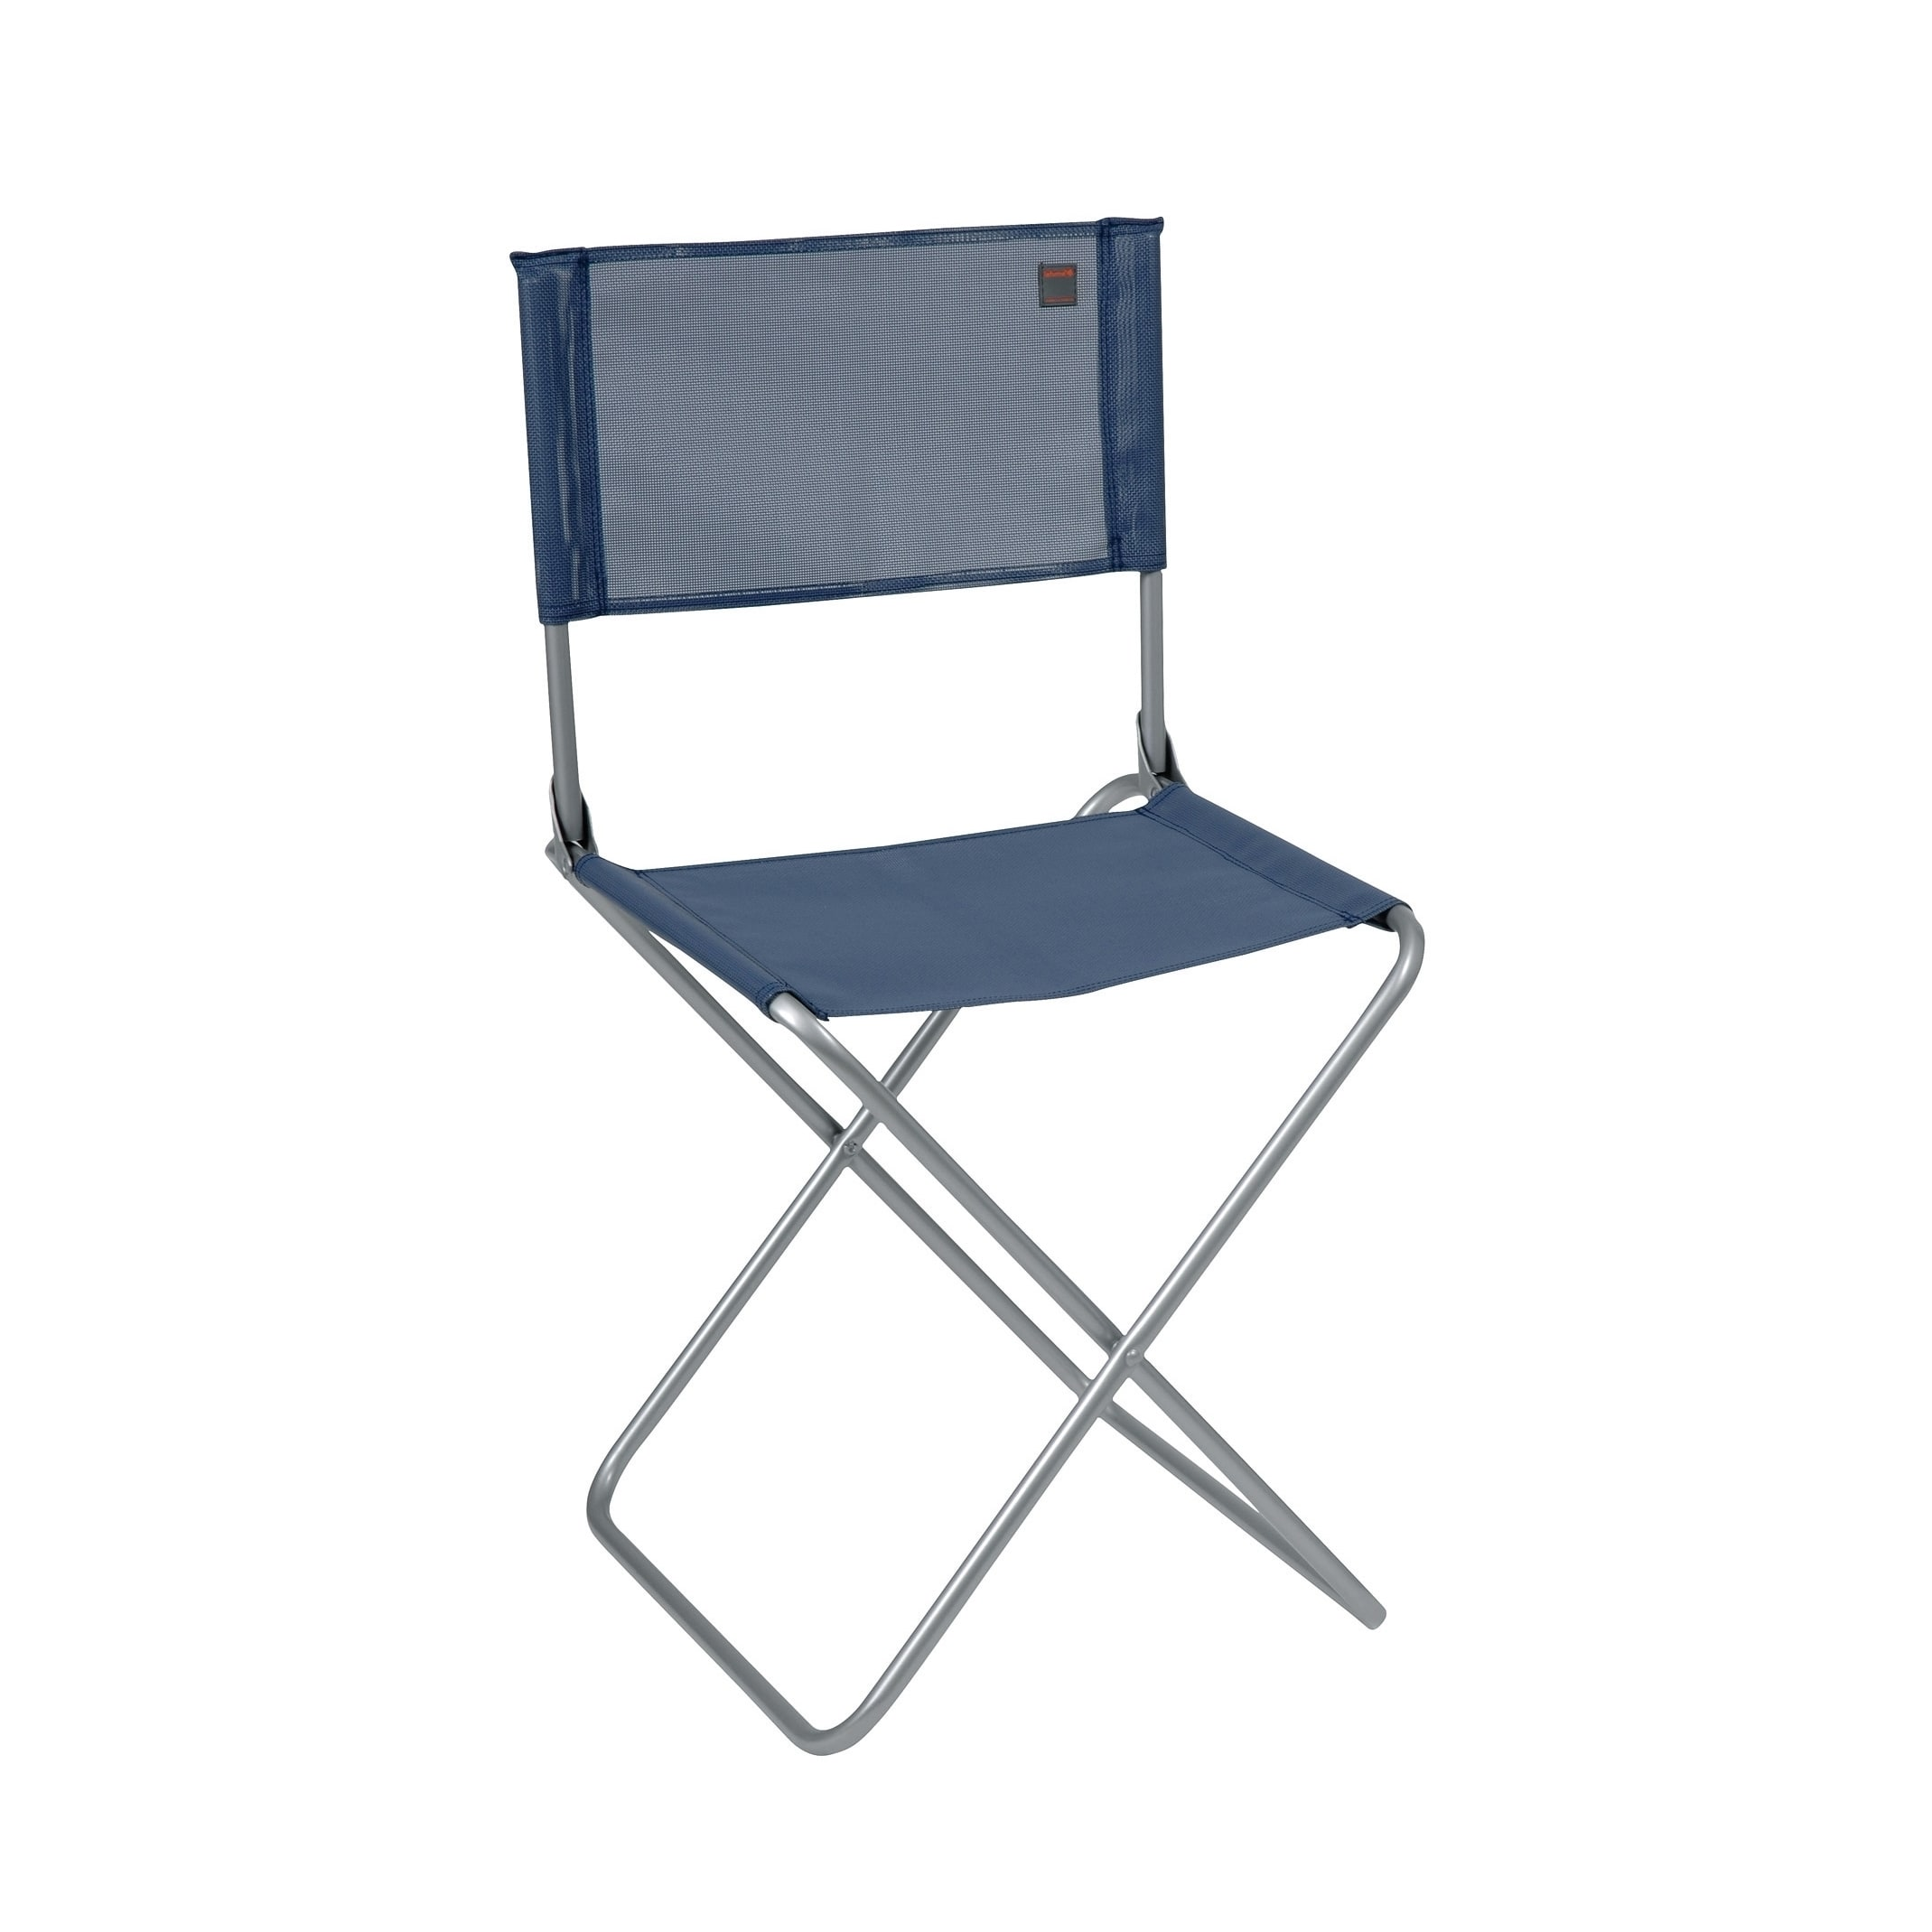 Lafuma CNO Alu brut Aluminum Frame Folding Chair with Ocean Batyline Fabric (Set of 6) by Overstock